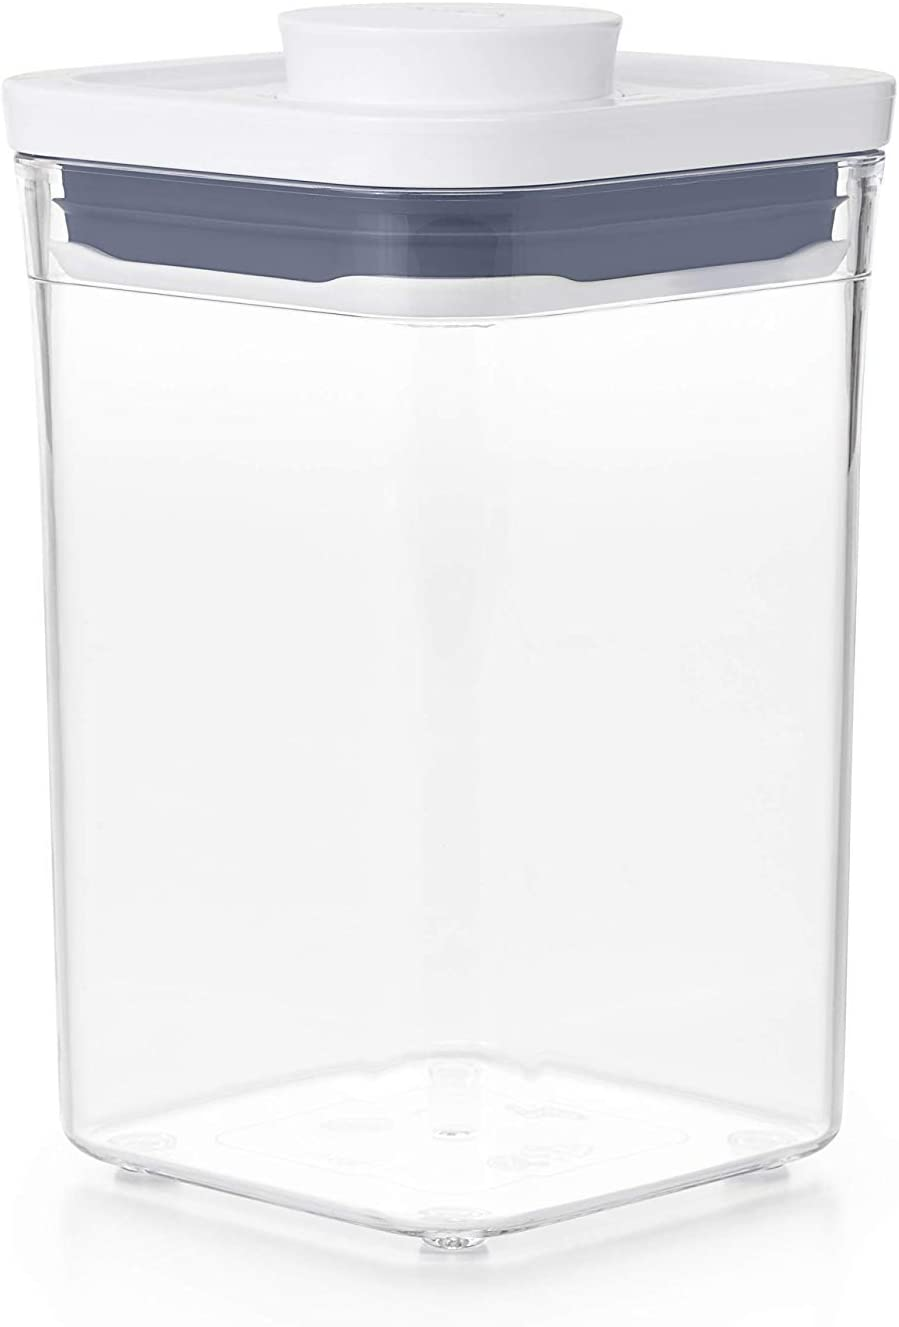 OXO Good Grips POP Container - Airtight Food Storage - 1.1 Qt Square (Set of 4) for Brown Sugar and More